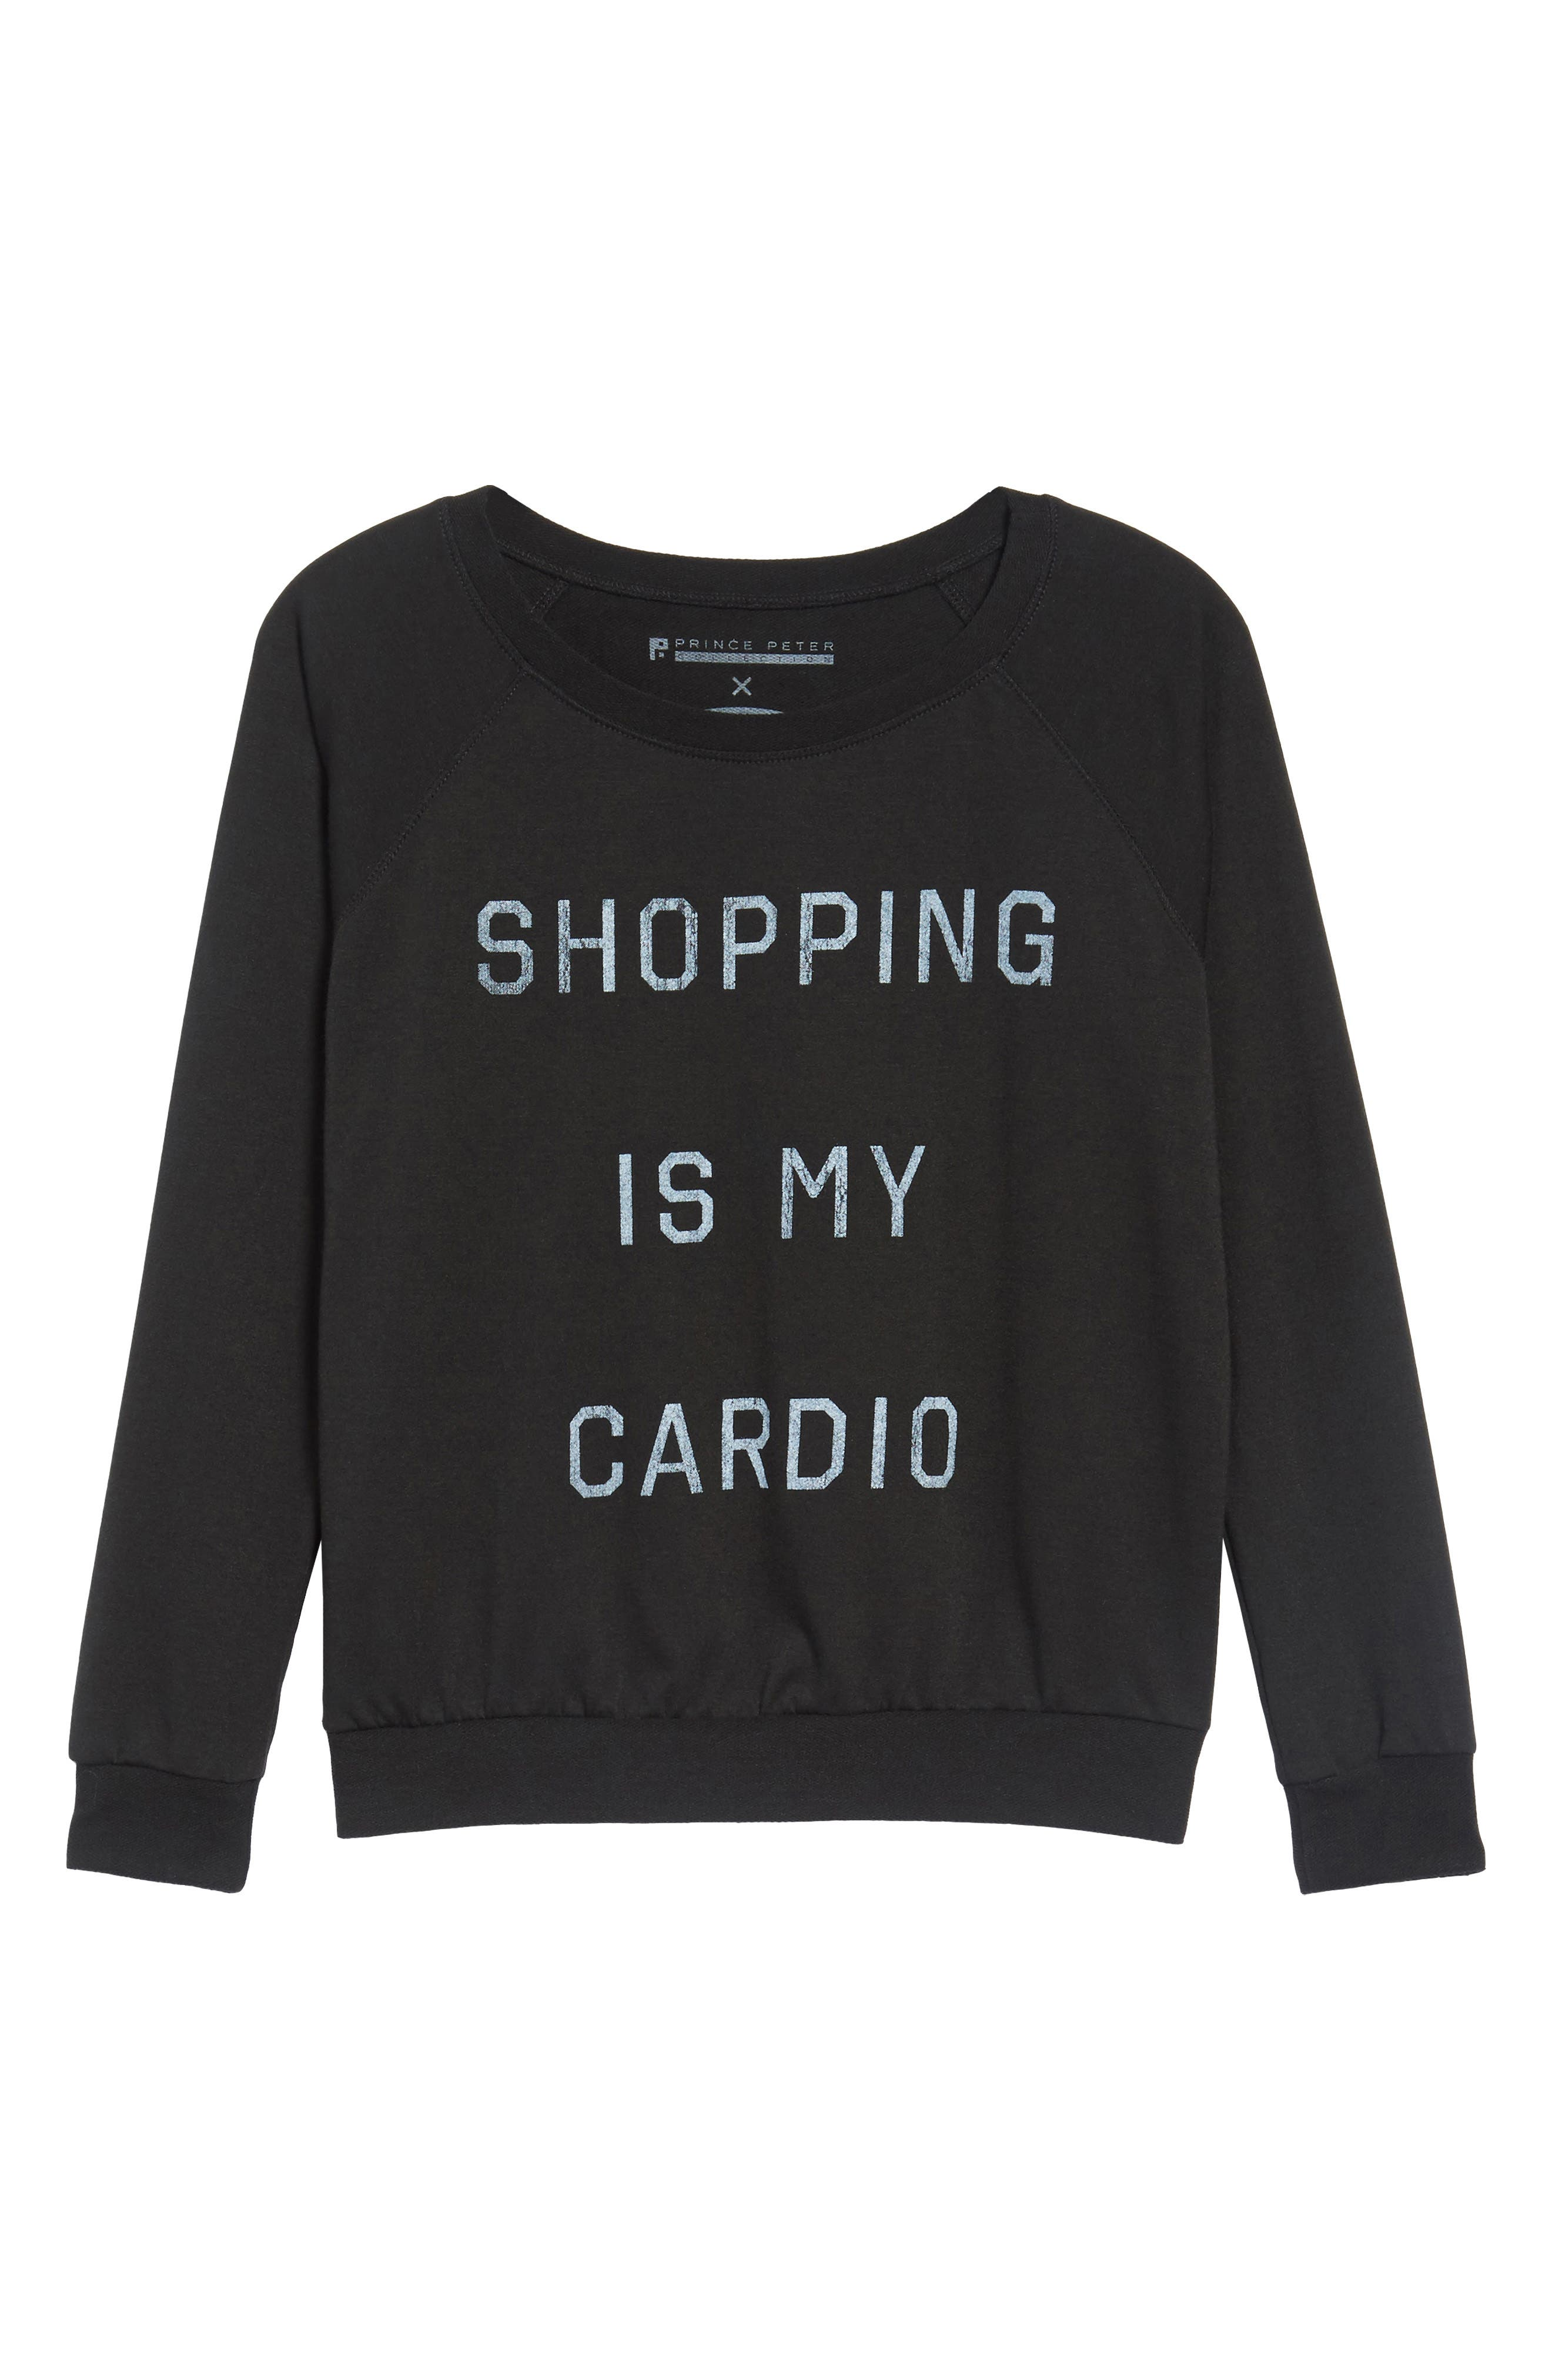 Shopping is My Cardio Tee,                             Alternate thumbnail 6, color,                             001